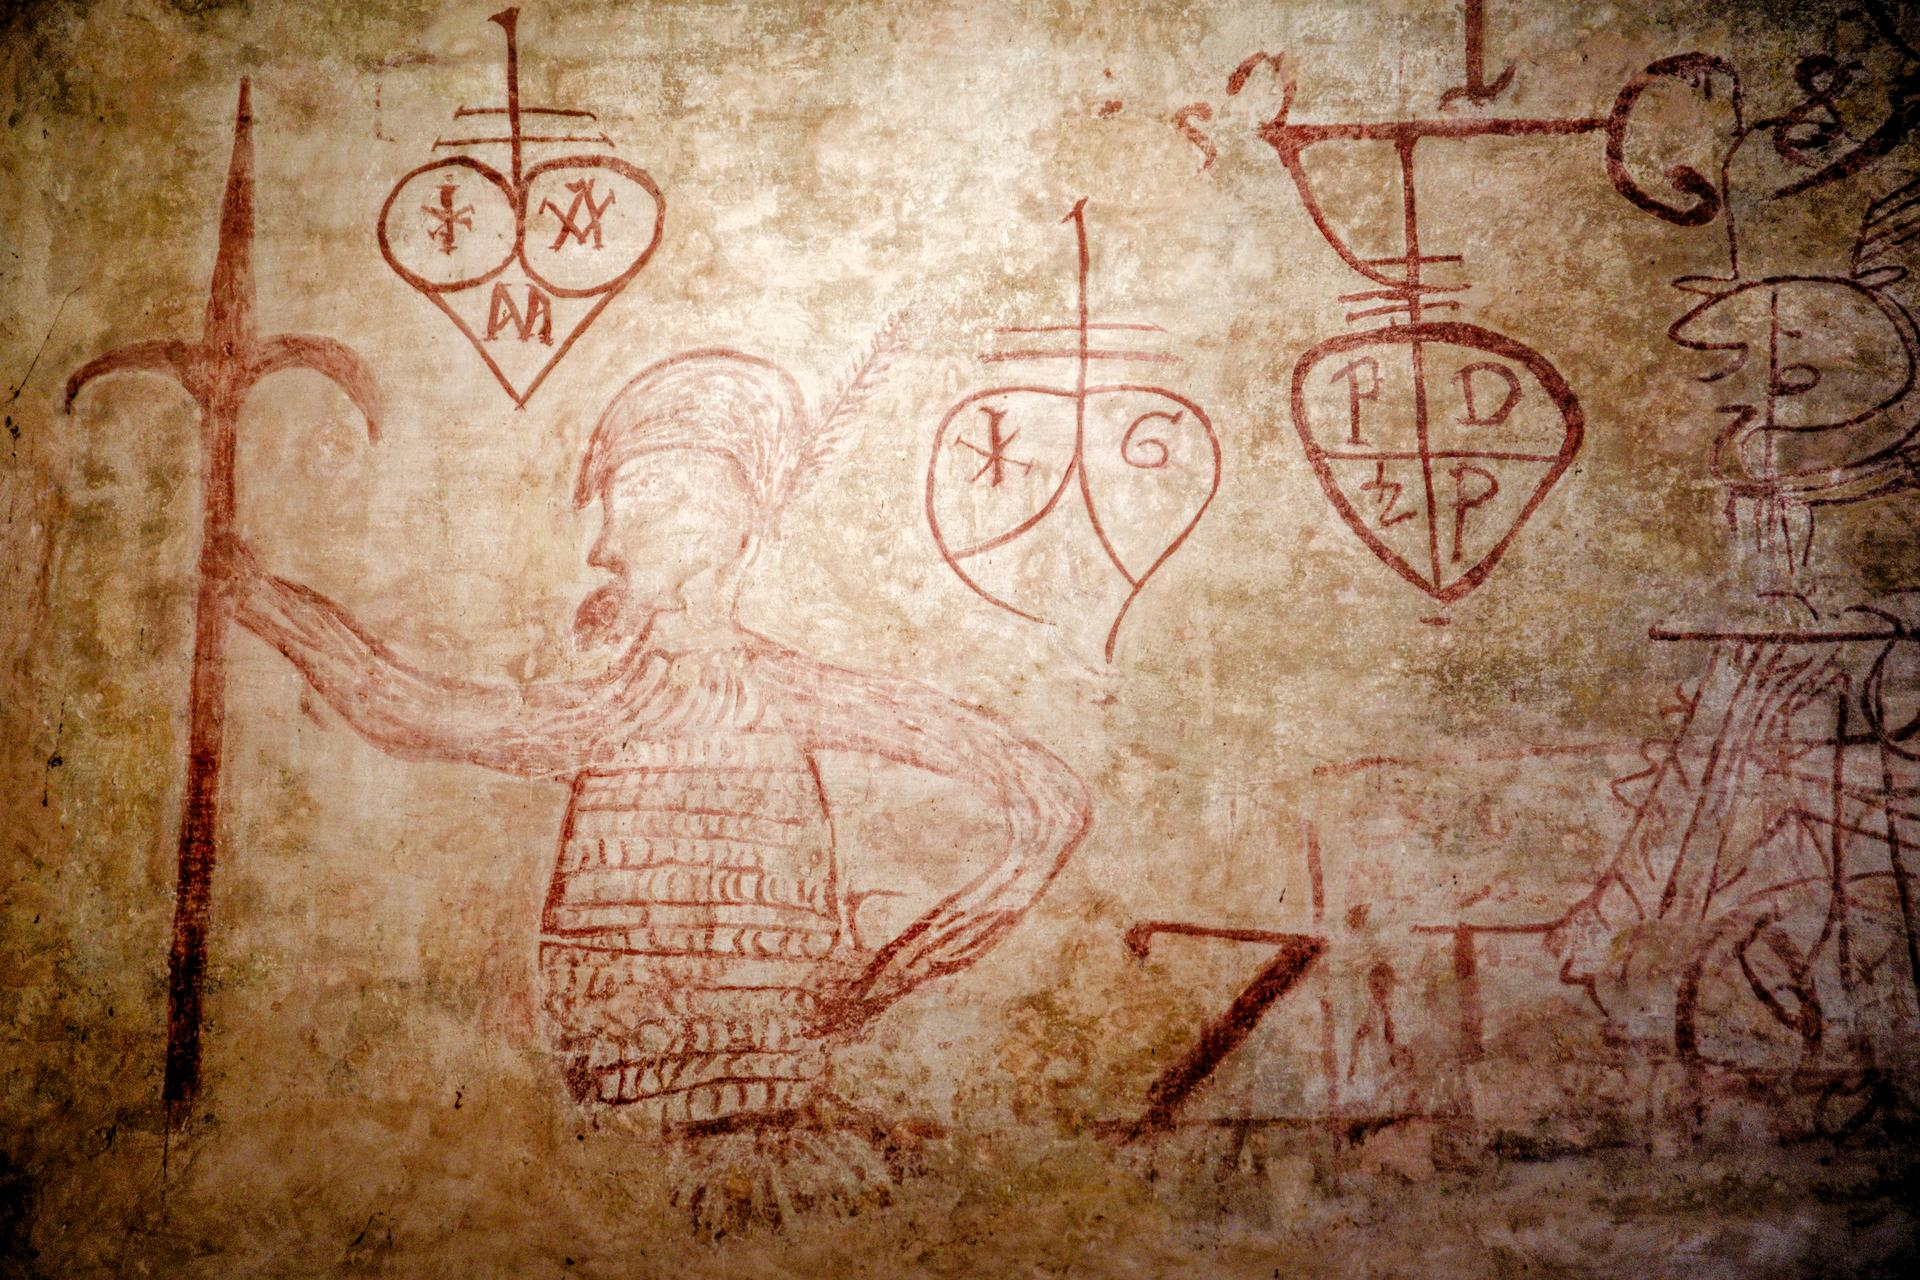 Drawings on the walls on Lazzaretto Nuovo island, from the 16th century